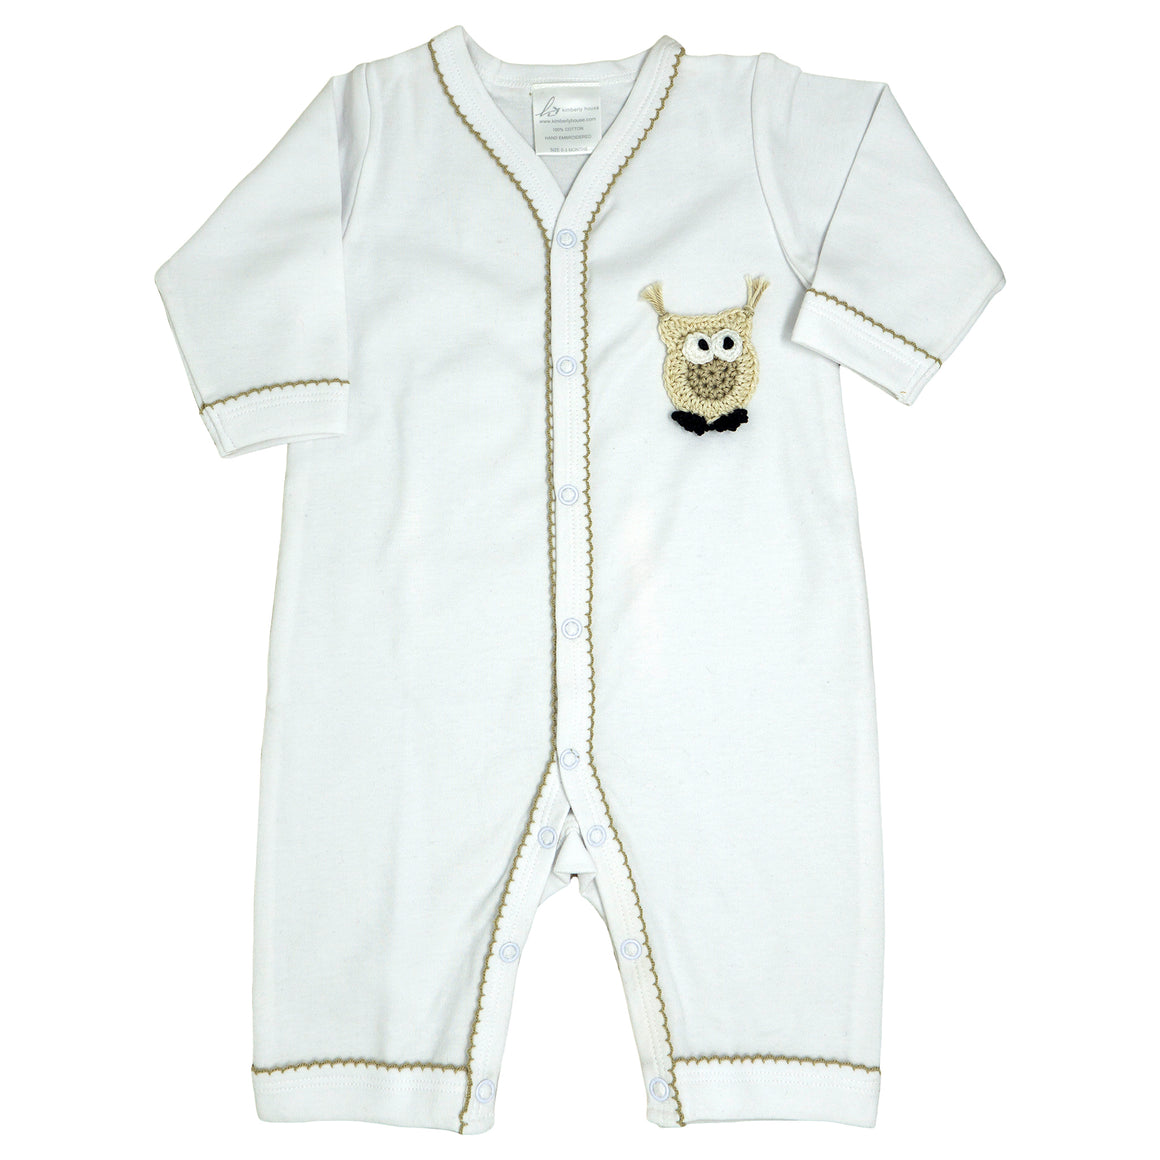 long body onesie with a beige crocheted owl